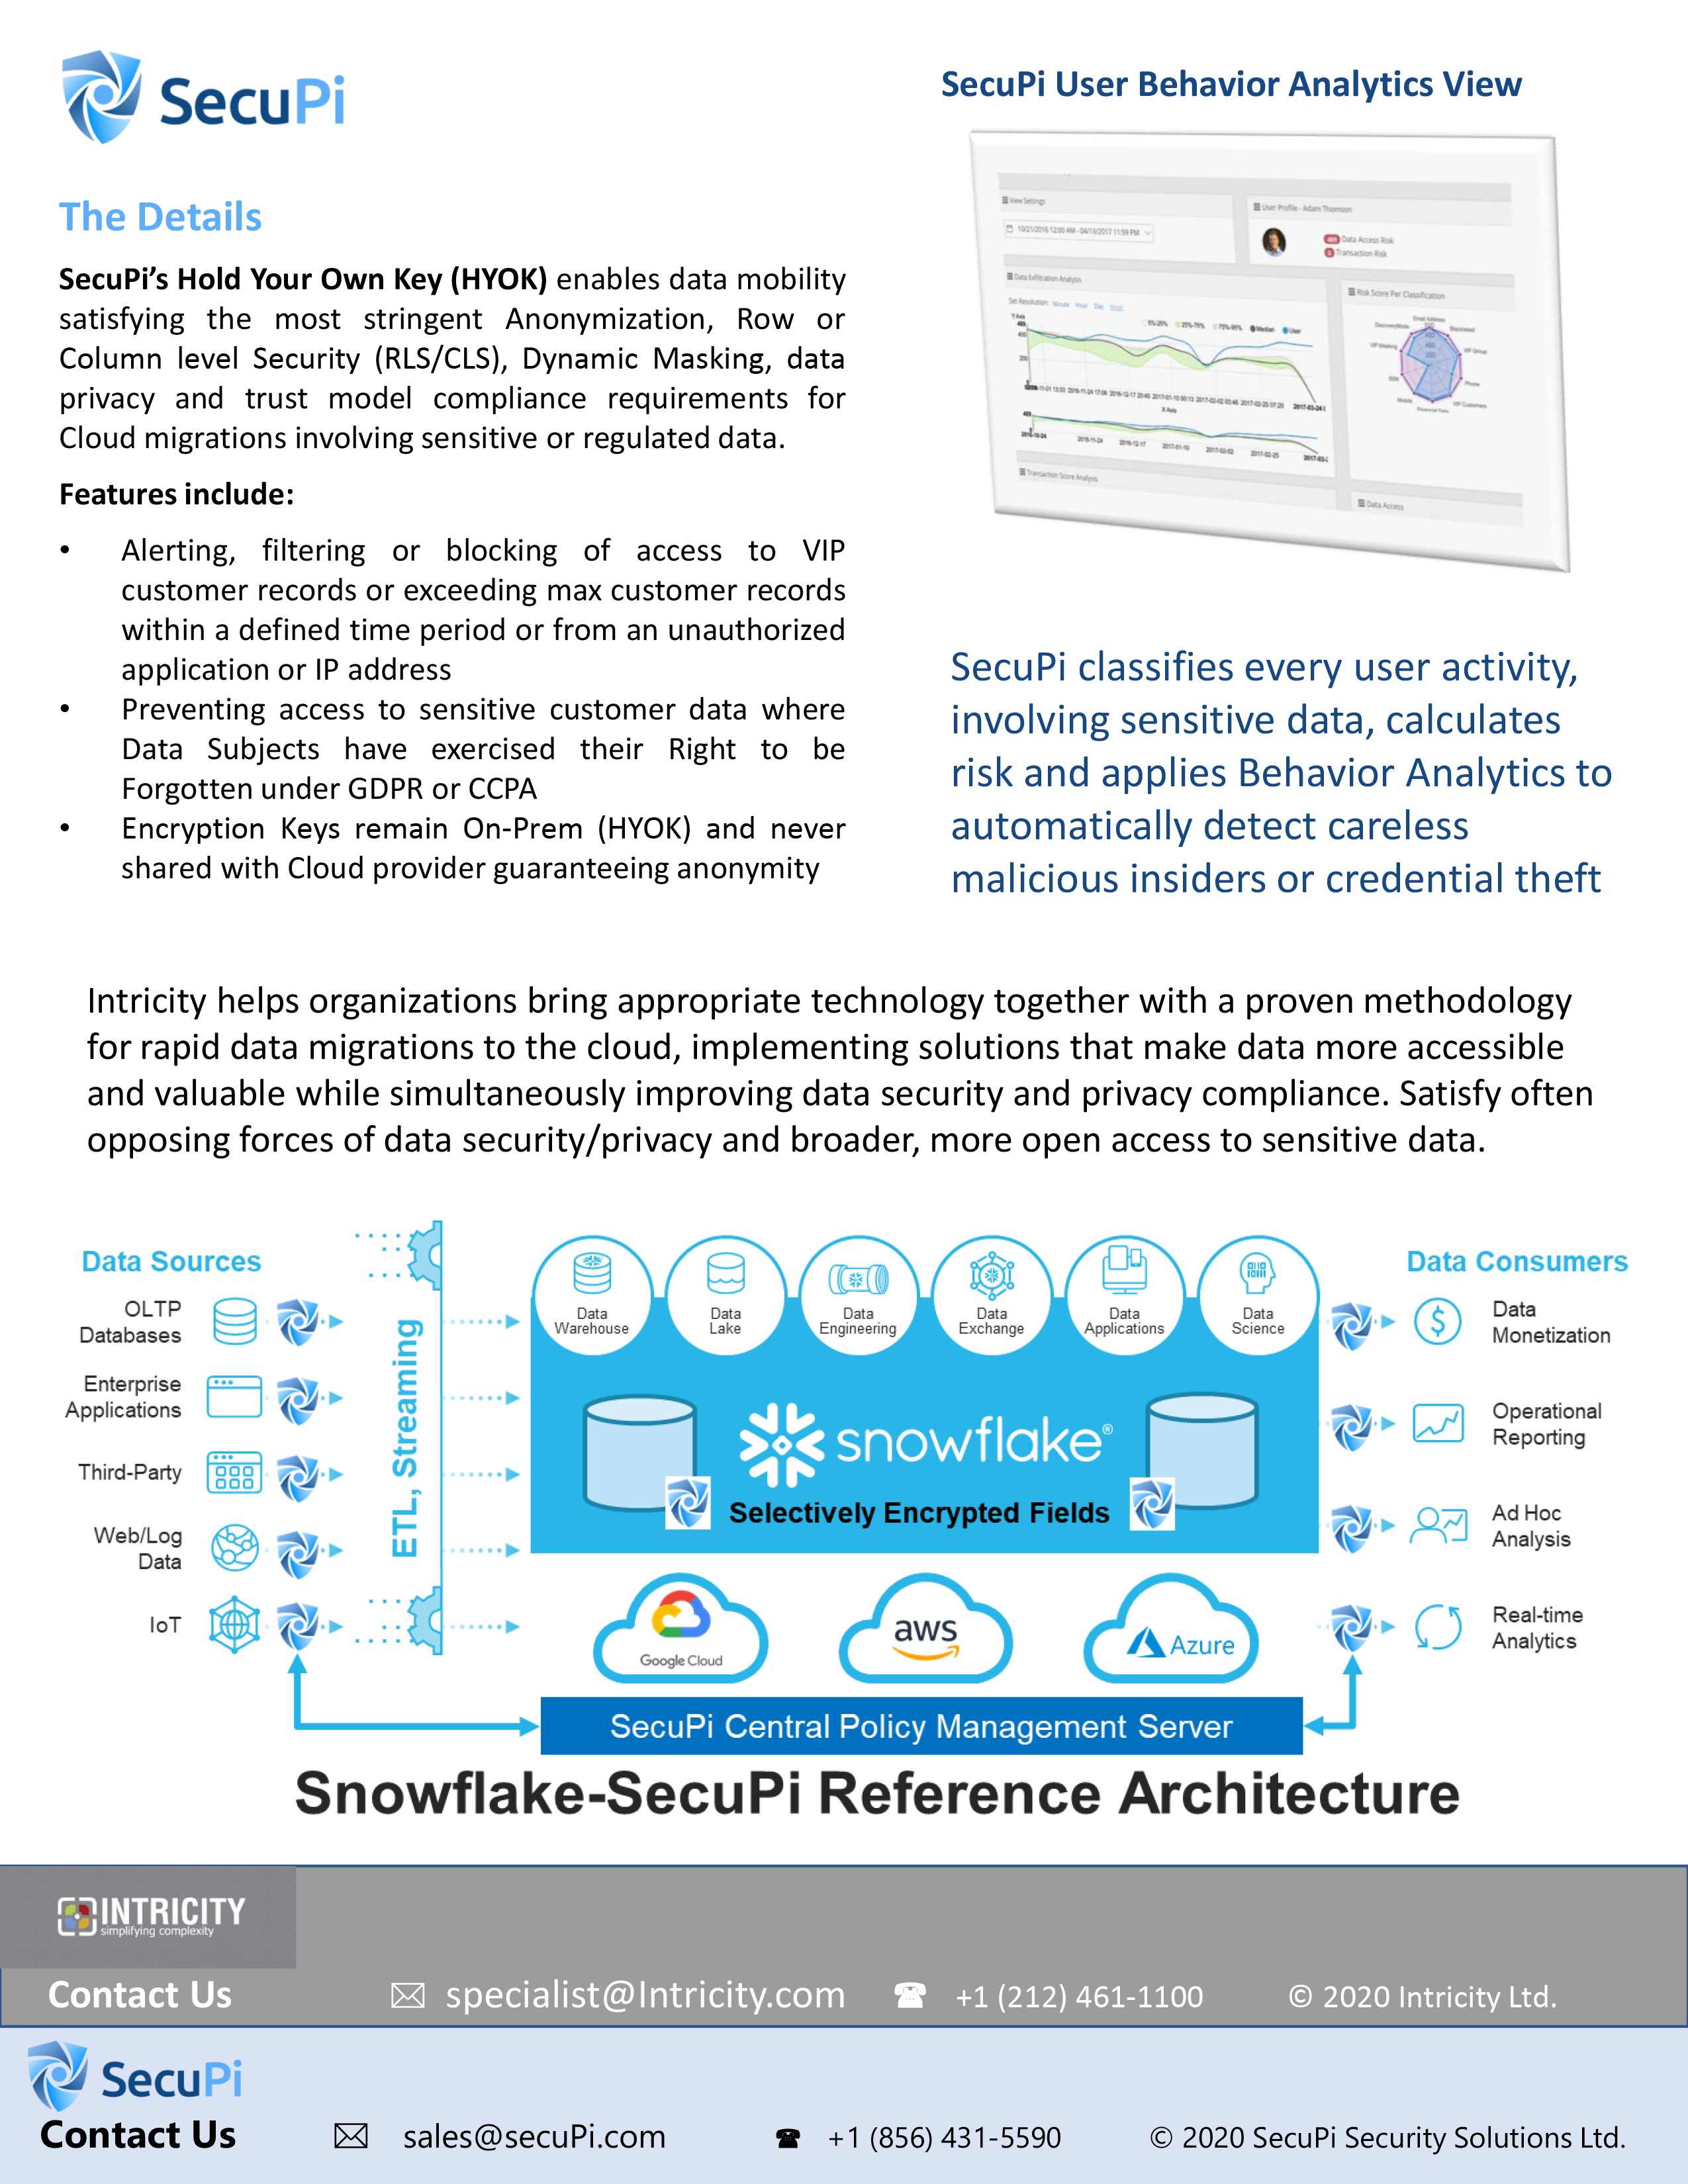 Intricity - SecuPi - Snowflake - Two Pager v6 2020-08-25-2 PG 2